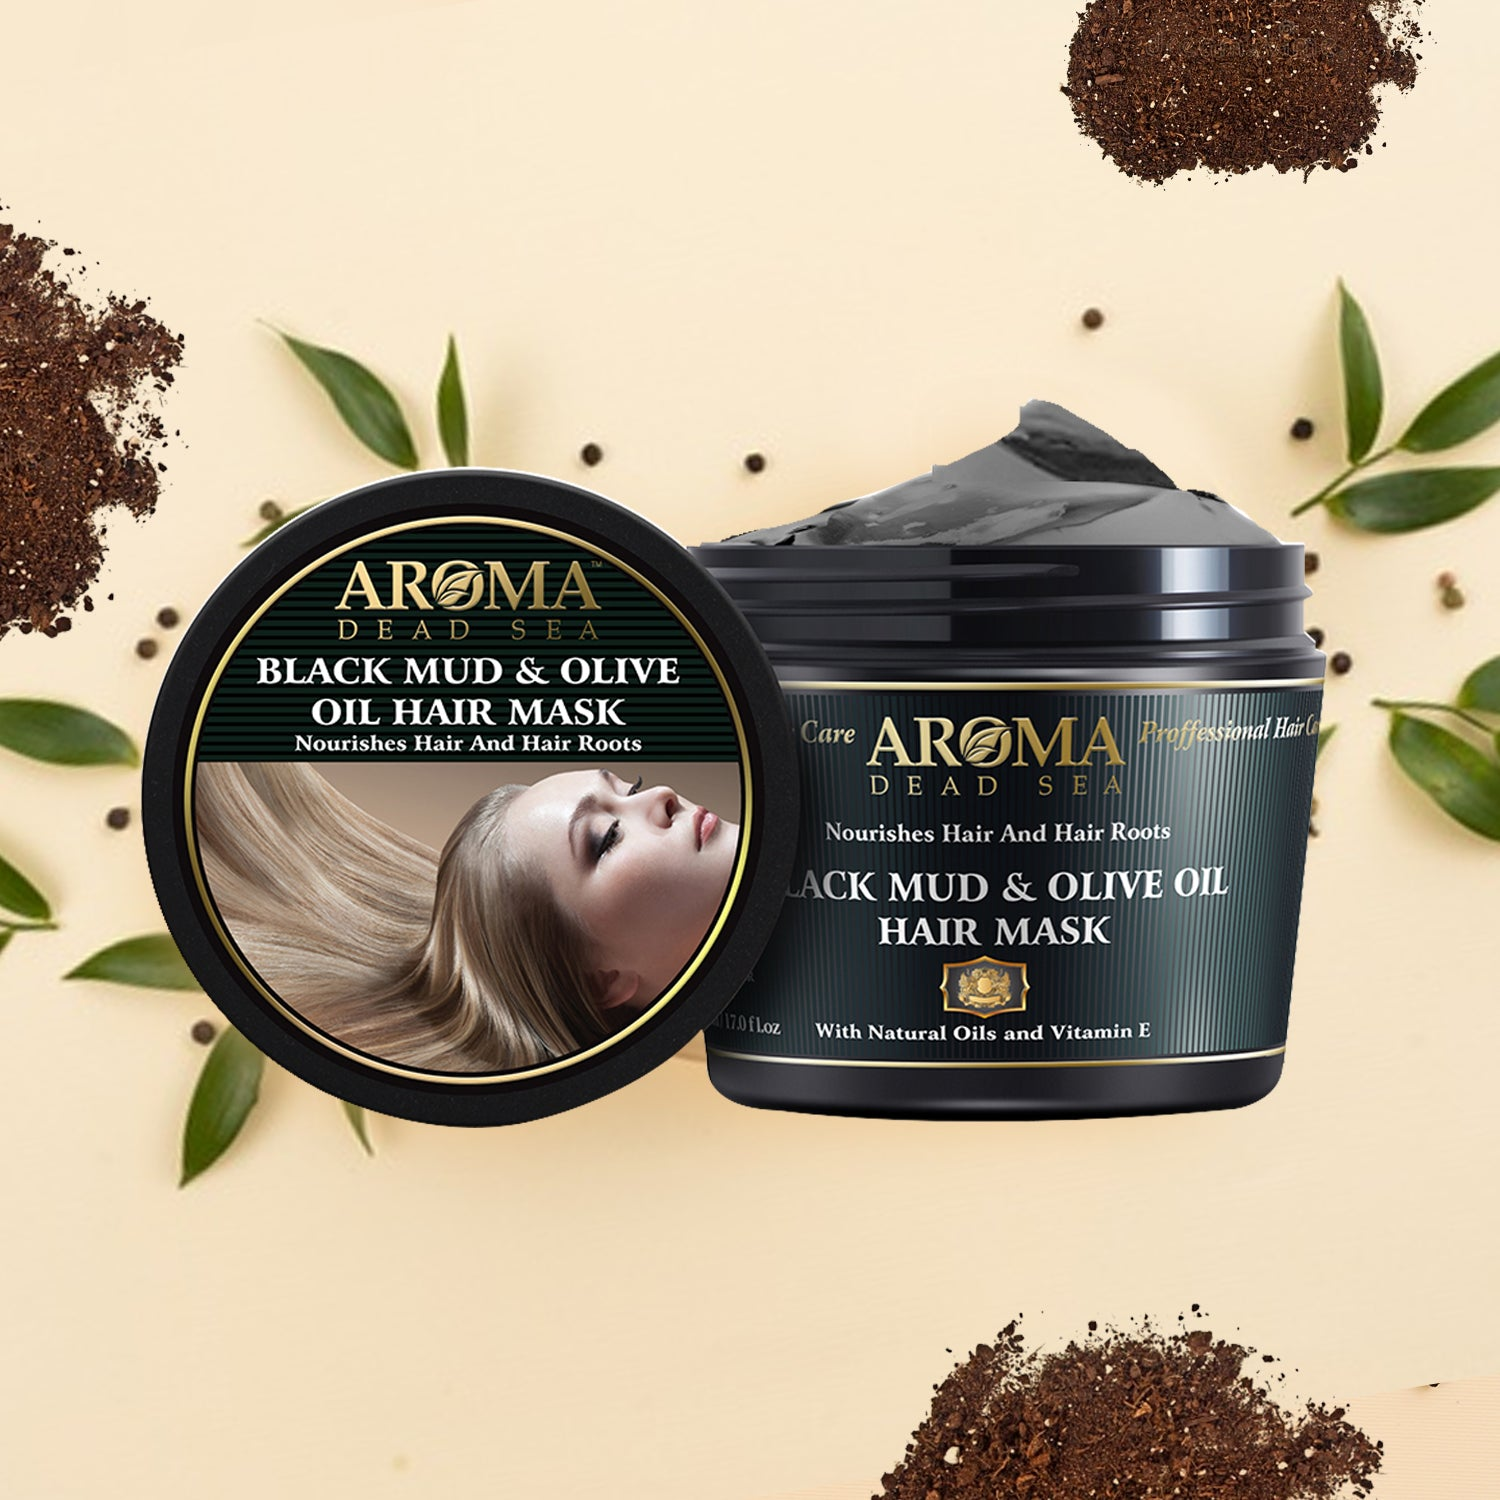 Black Mud & Olive Oil Hair Mask 500 ml - Aroma Dead Sea